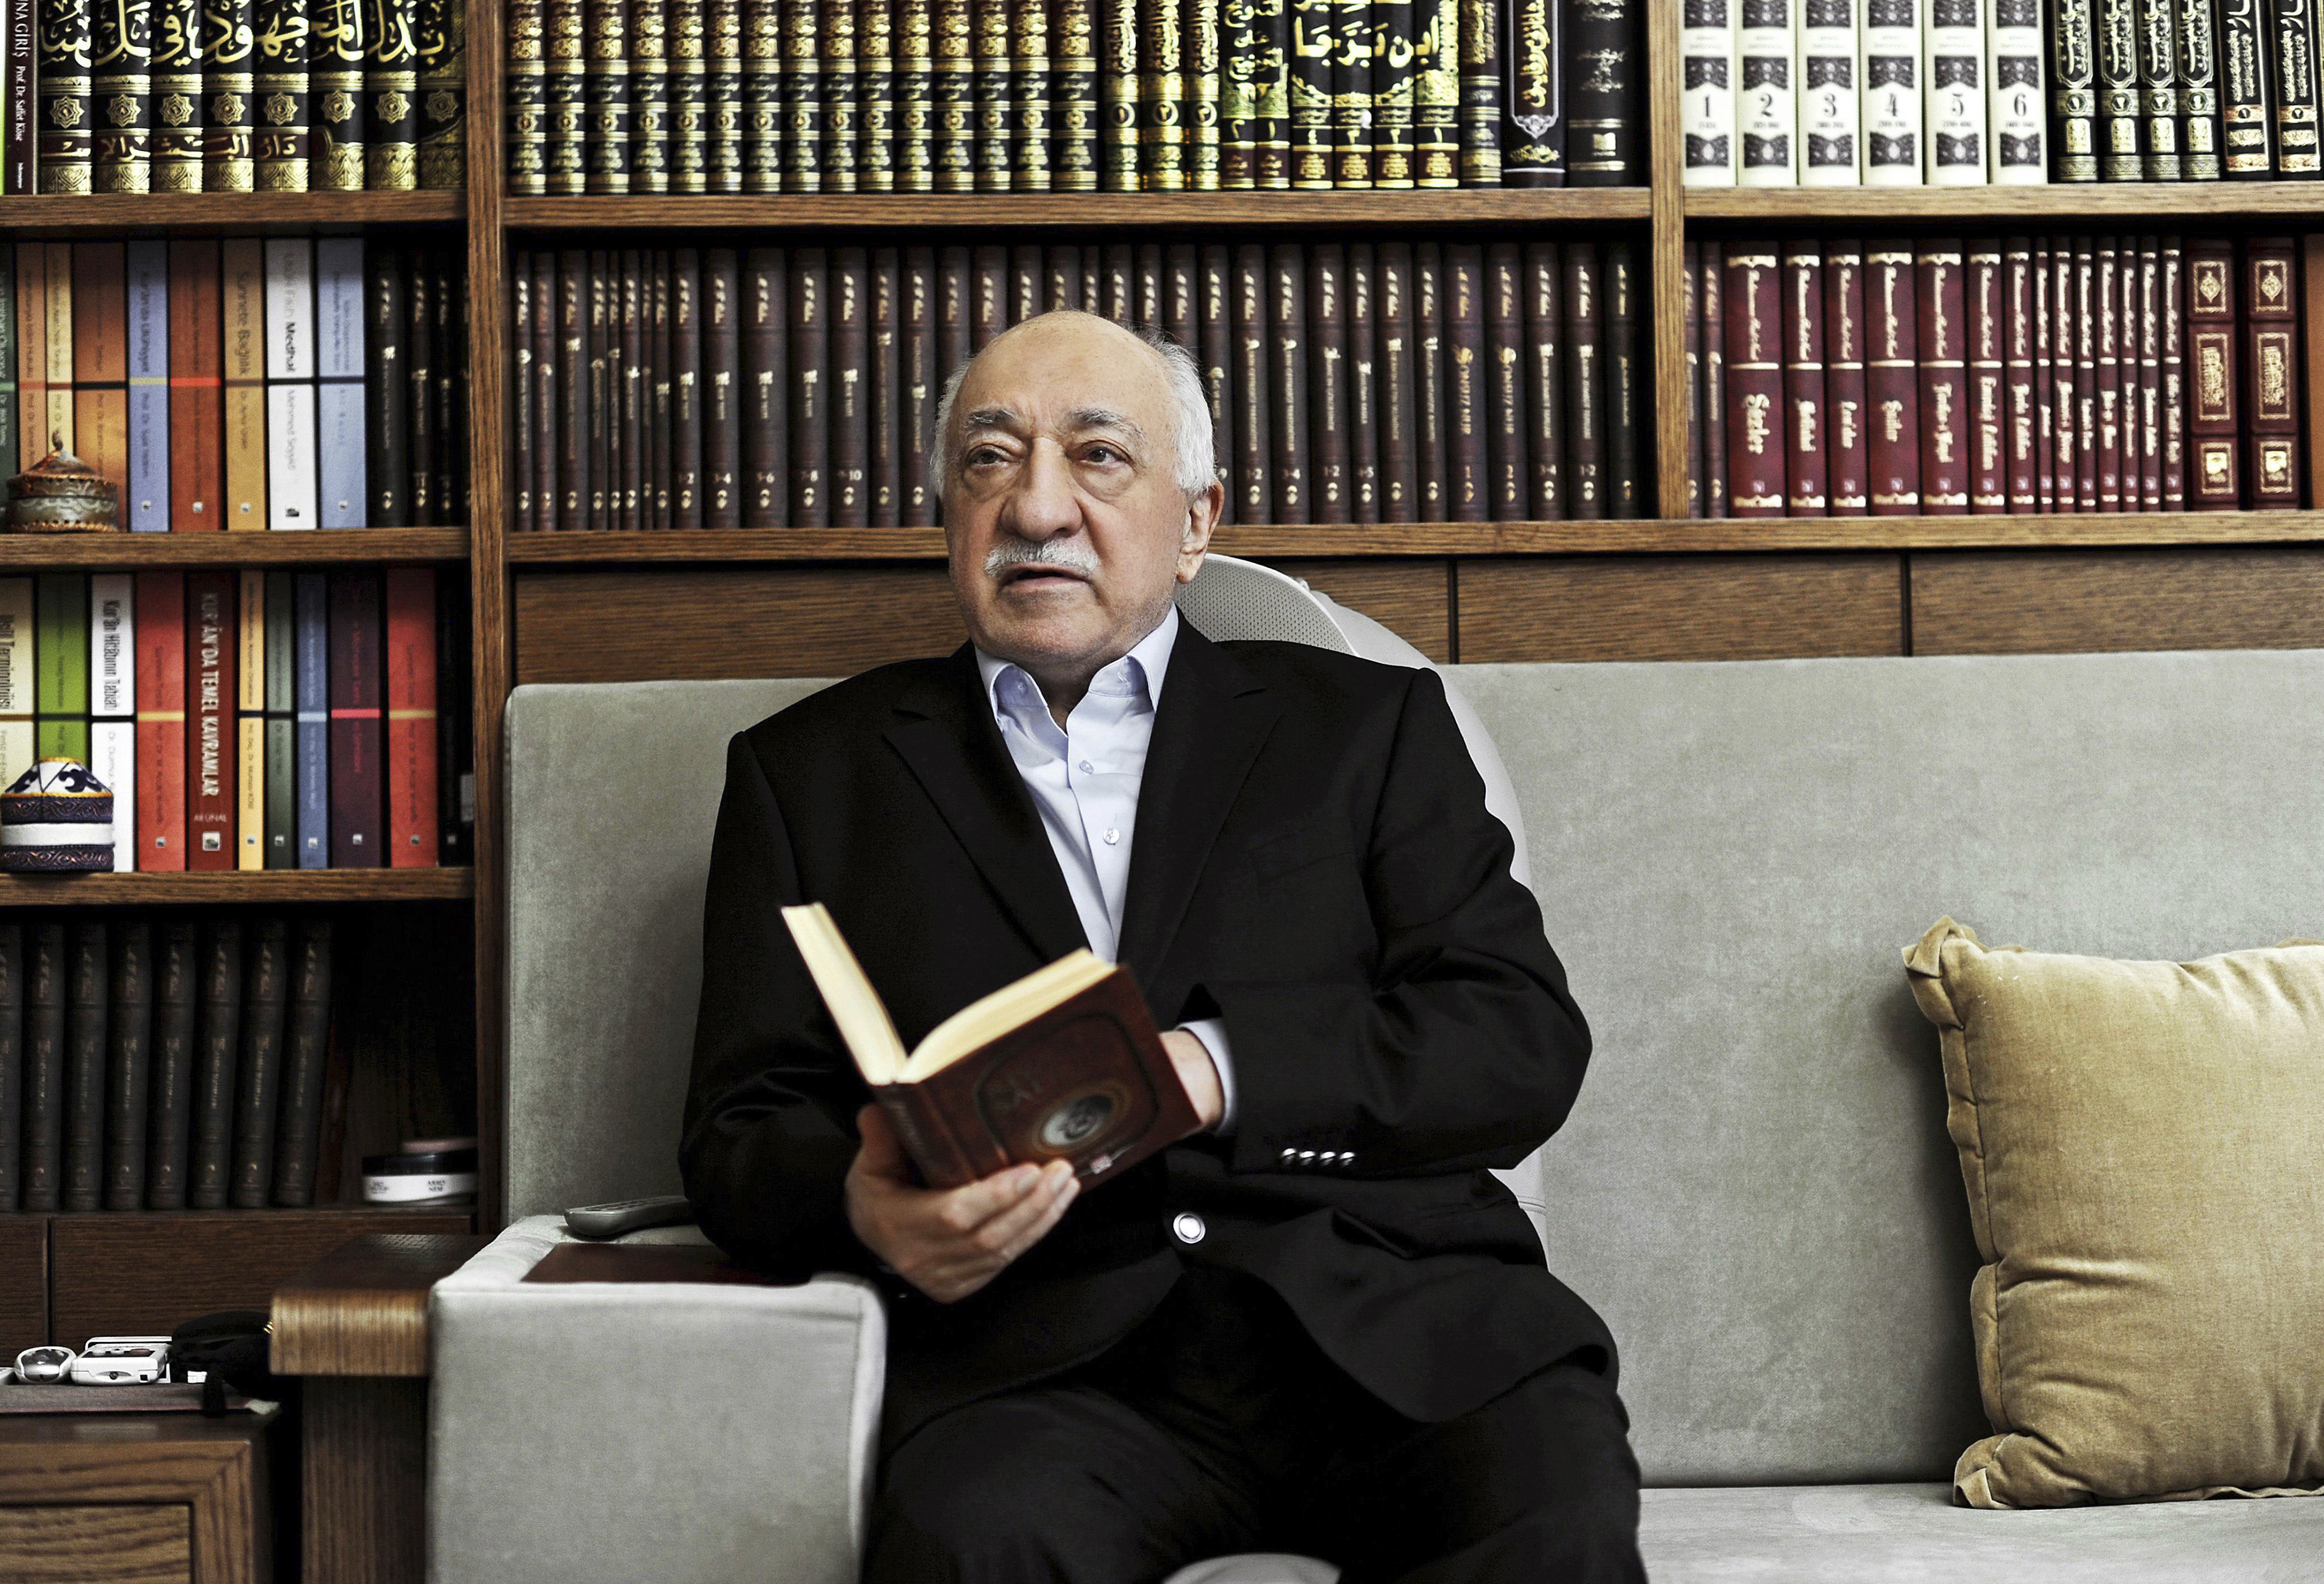 A file picture from March 15, 2014, shows Fethullah Gulen, an Islamic scholar and founder of the Gulen movement, during an interview at his residence in Pennsylvania.